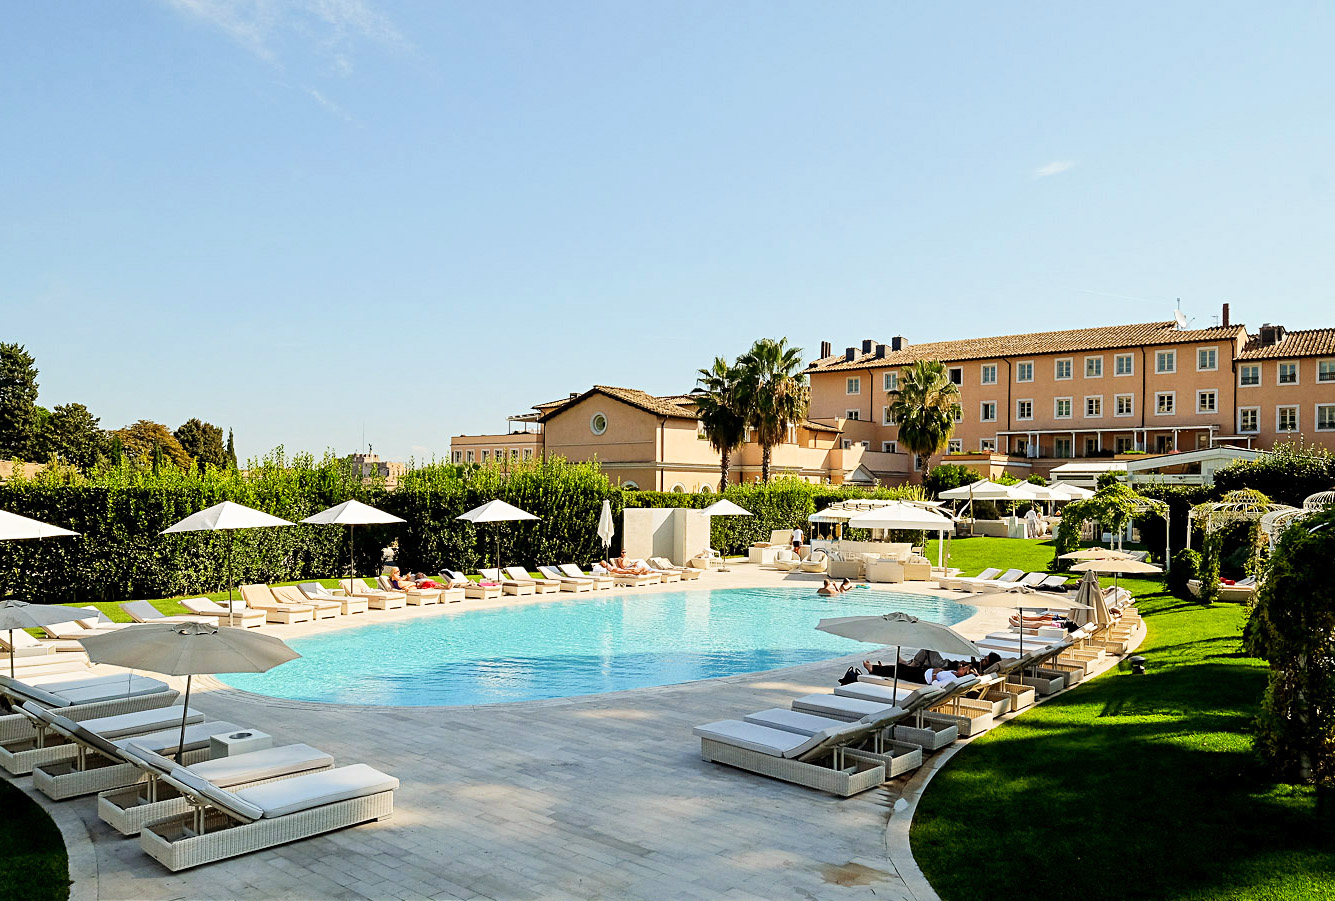 Luxury hotel gran melia villa agrippina in the heart of rome for Hotel gran melia villa agrippina rome